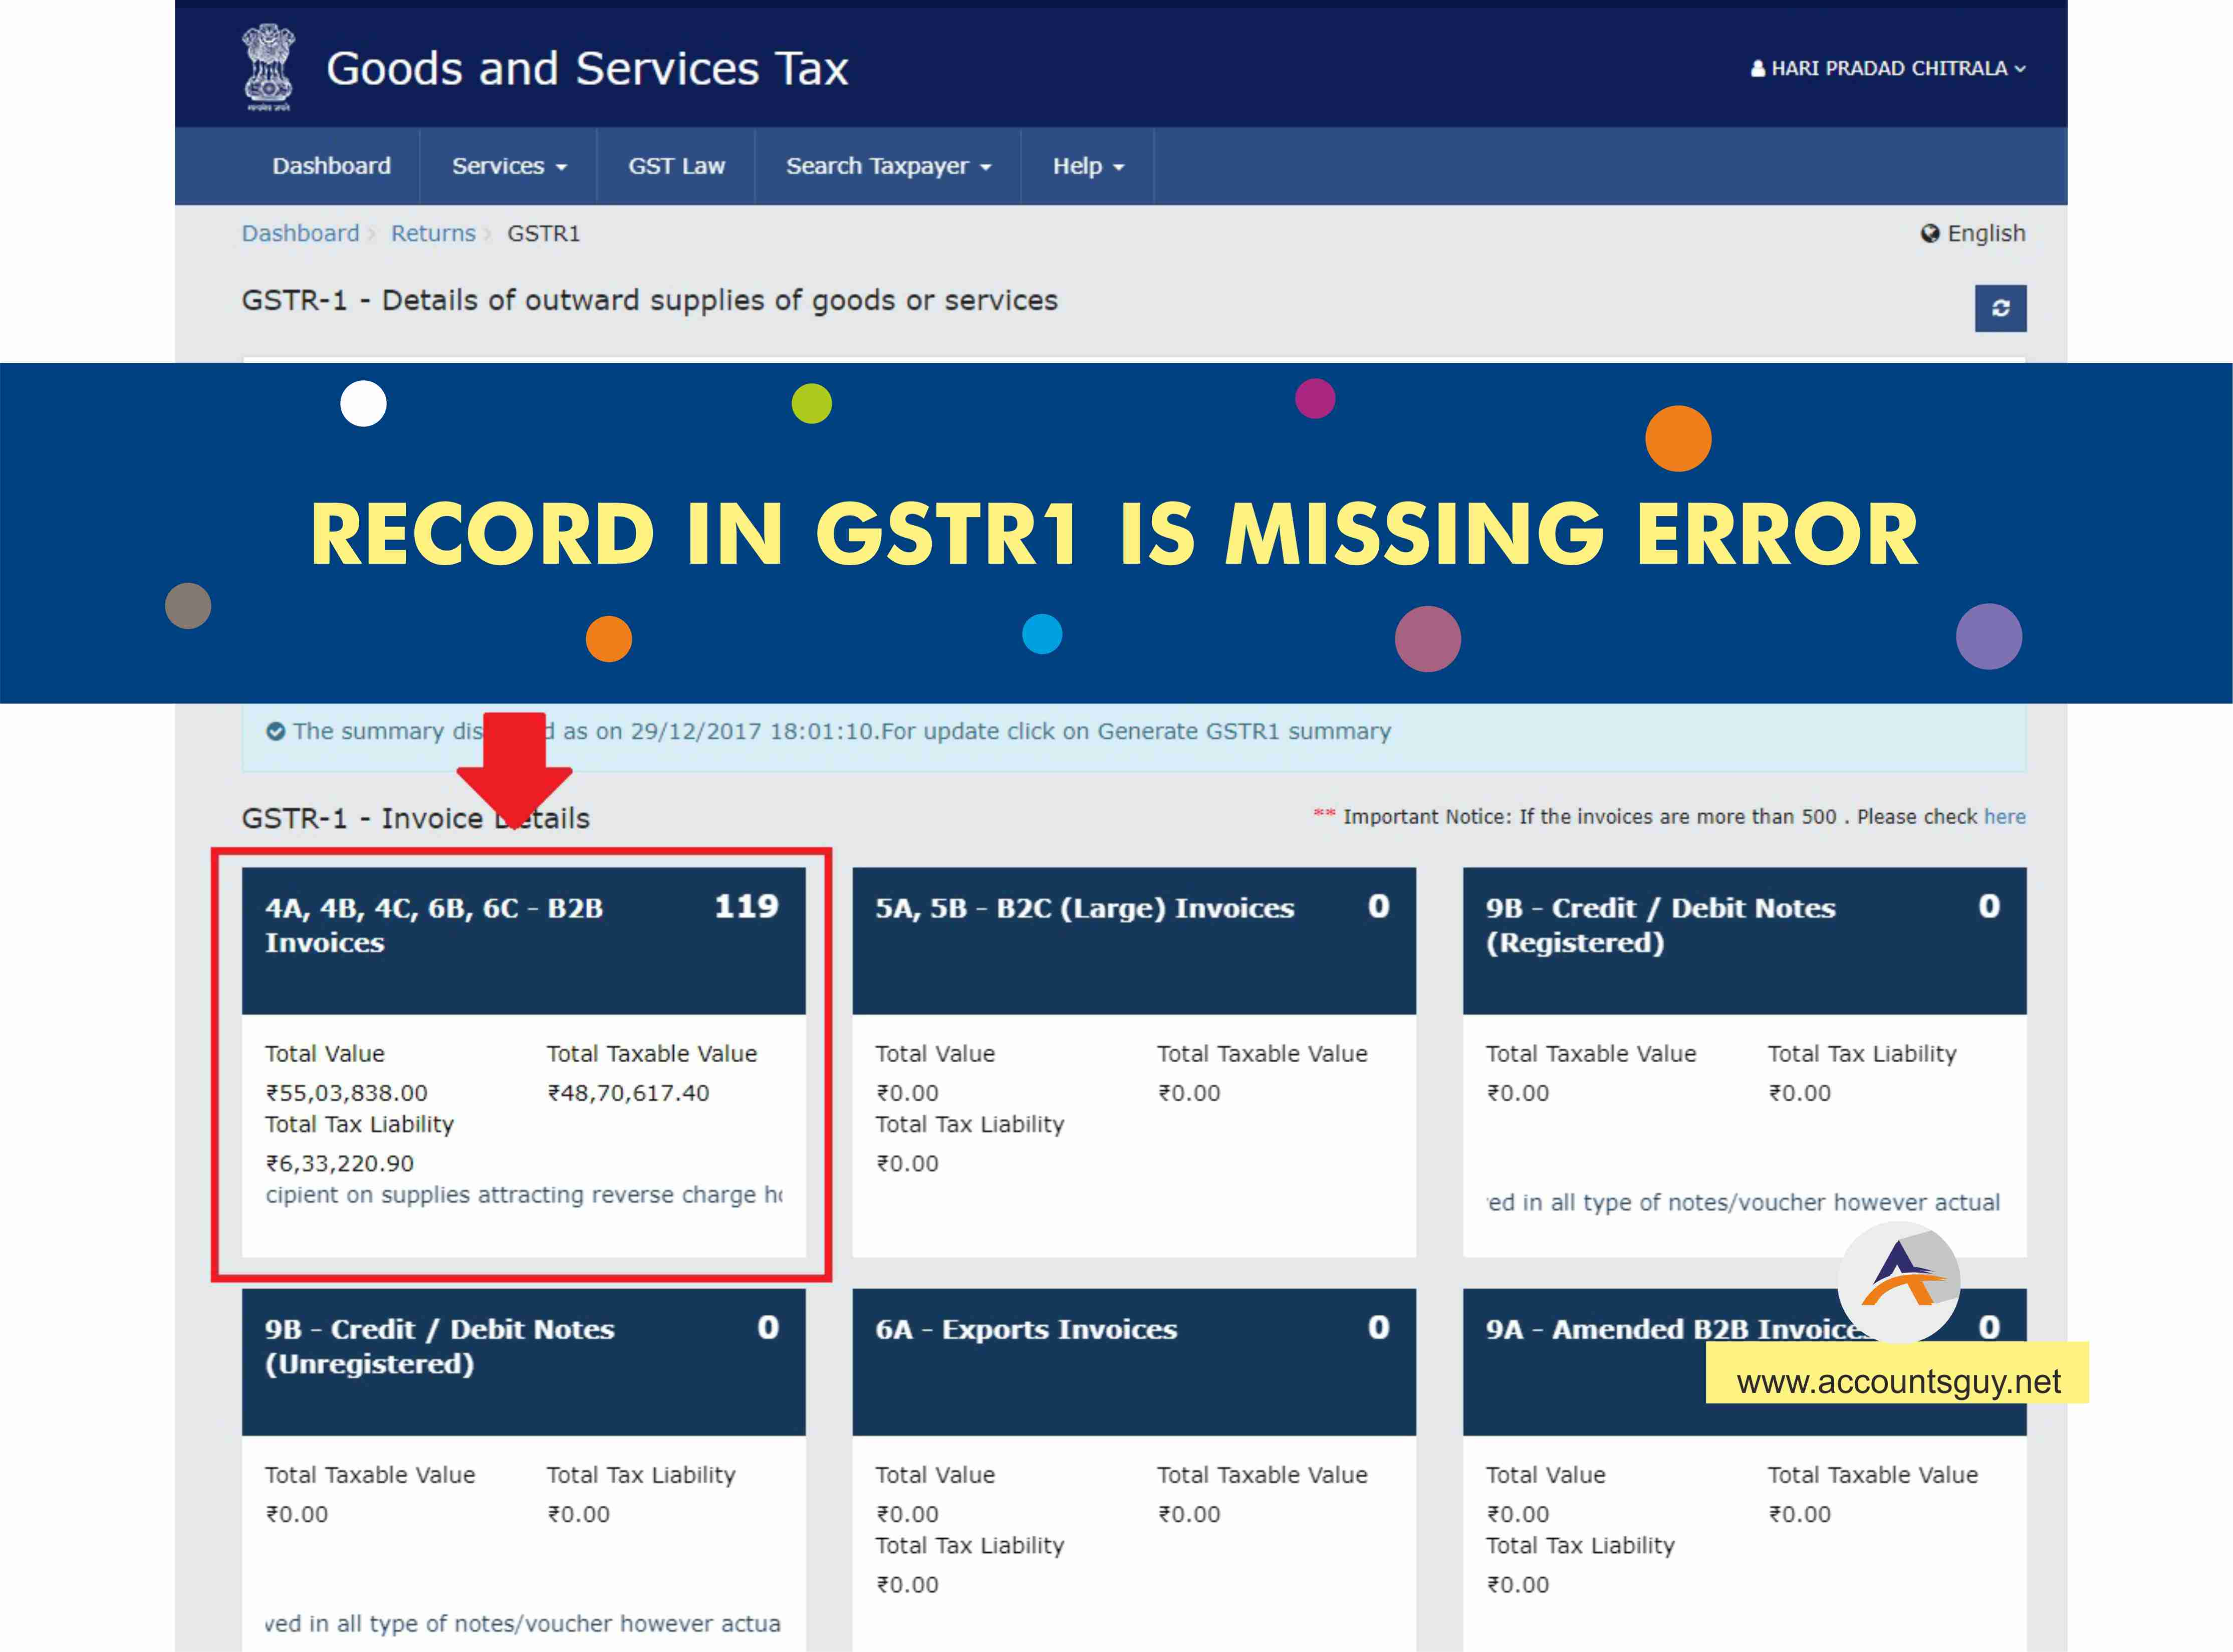 Records are missing in B2B column in GSTR1 return